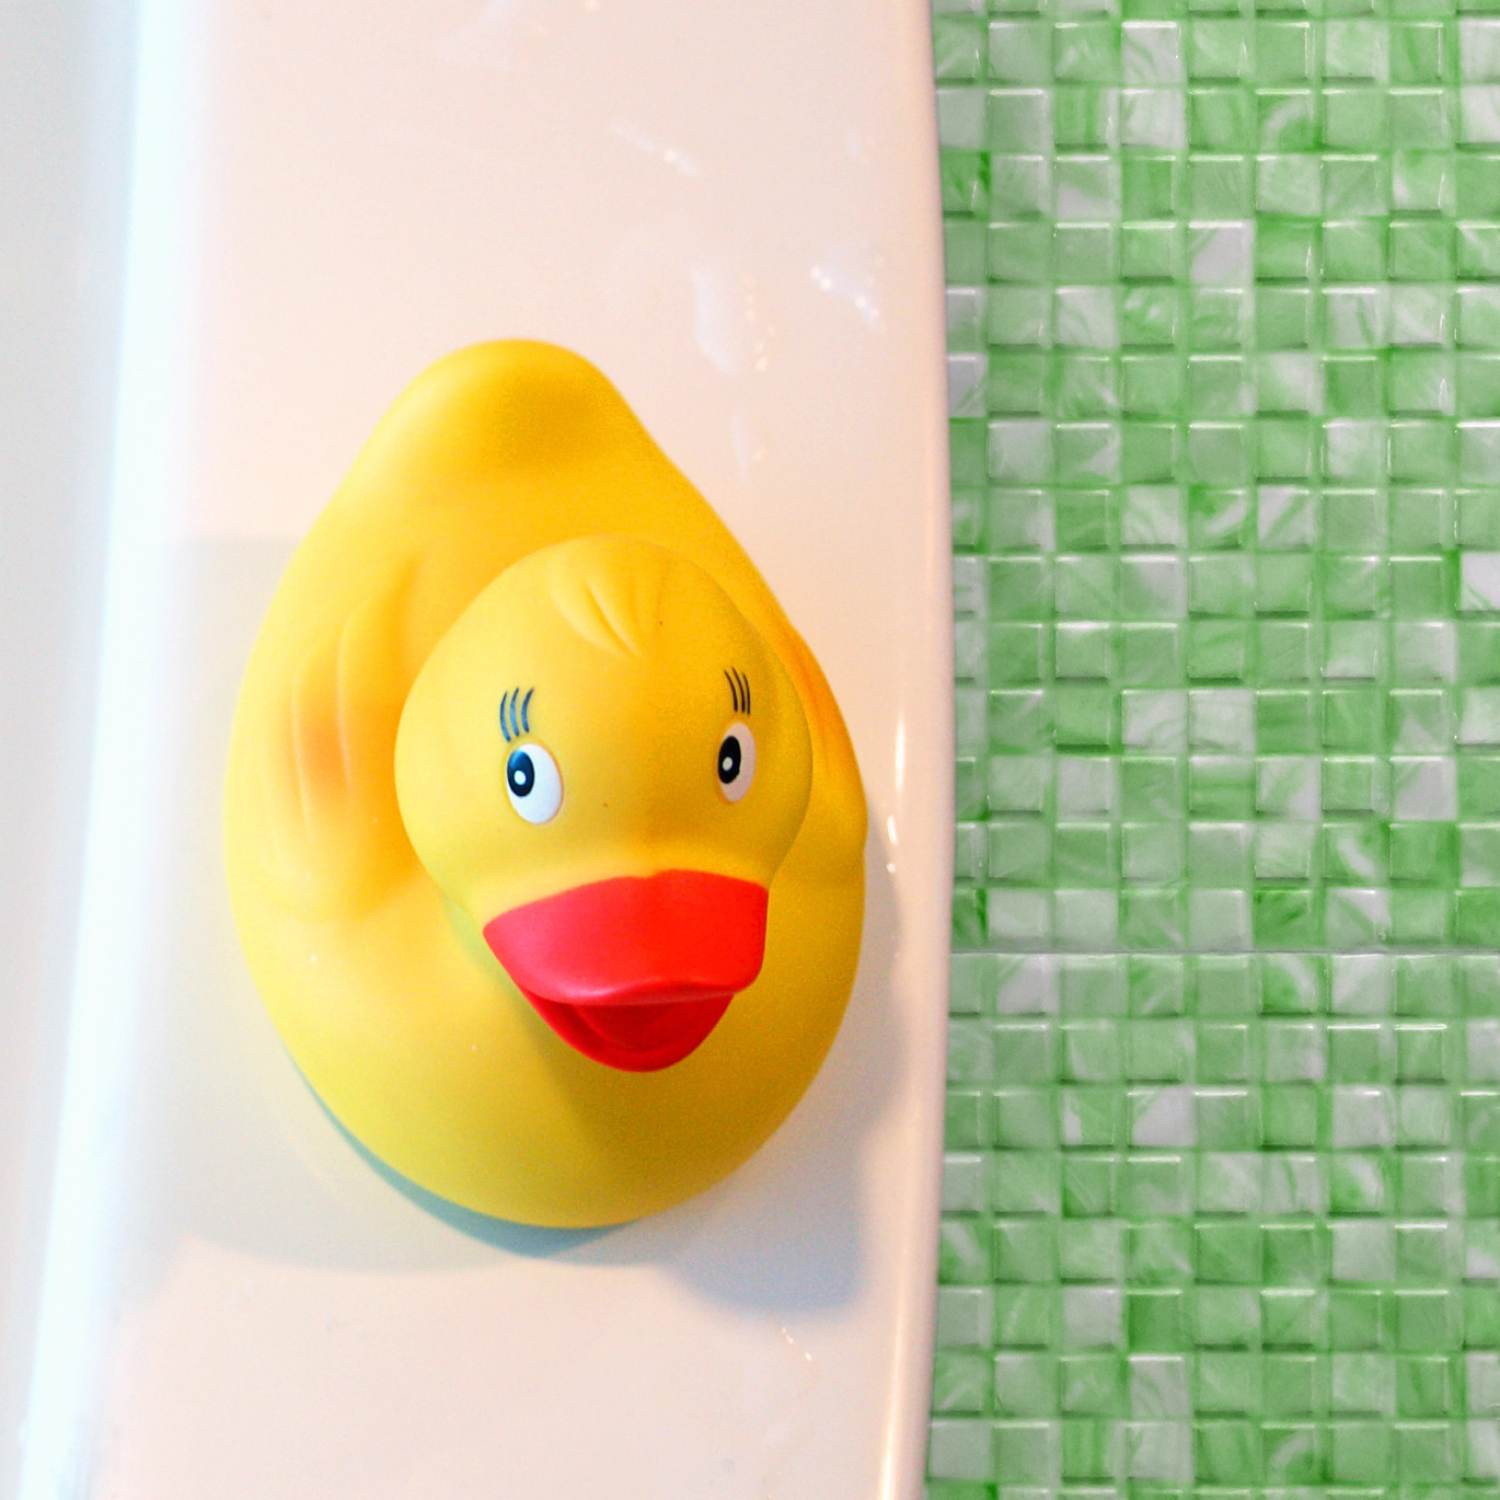 Rubber ducky on a tub in a bathroom